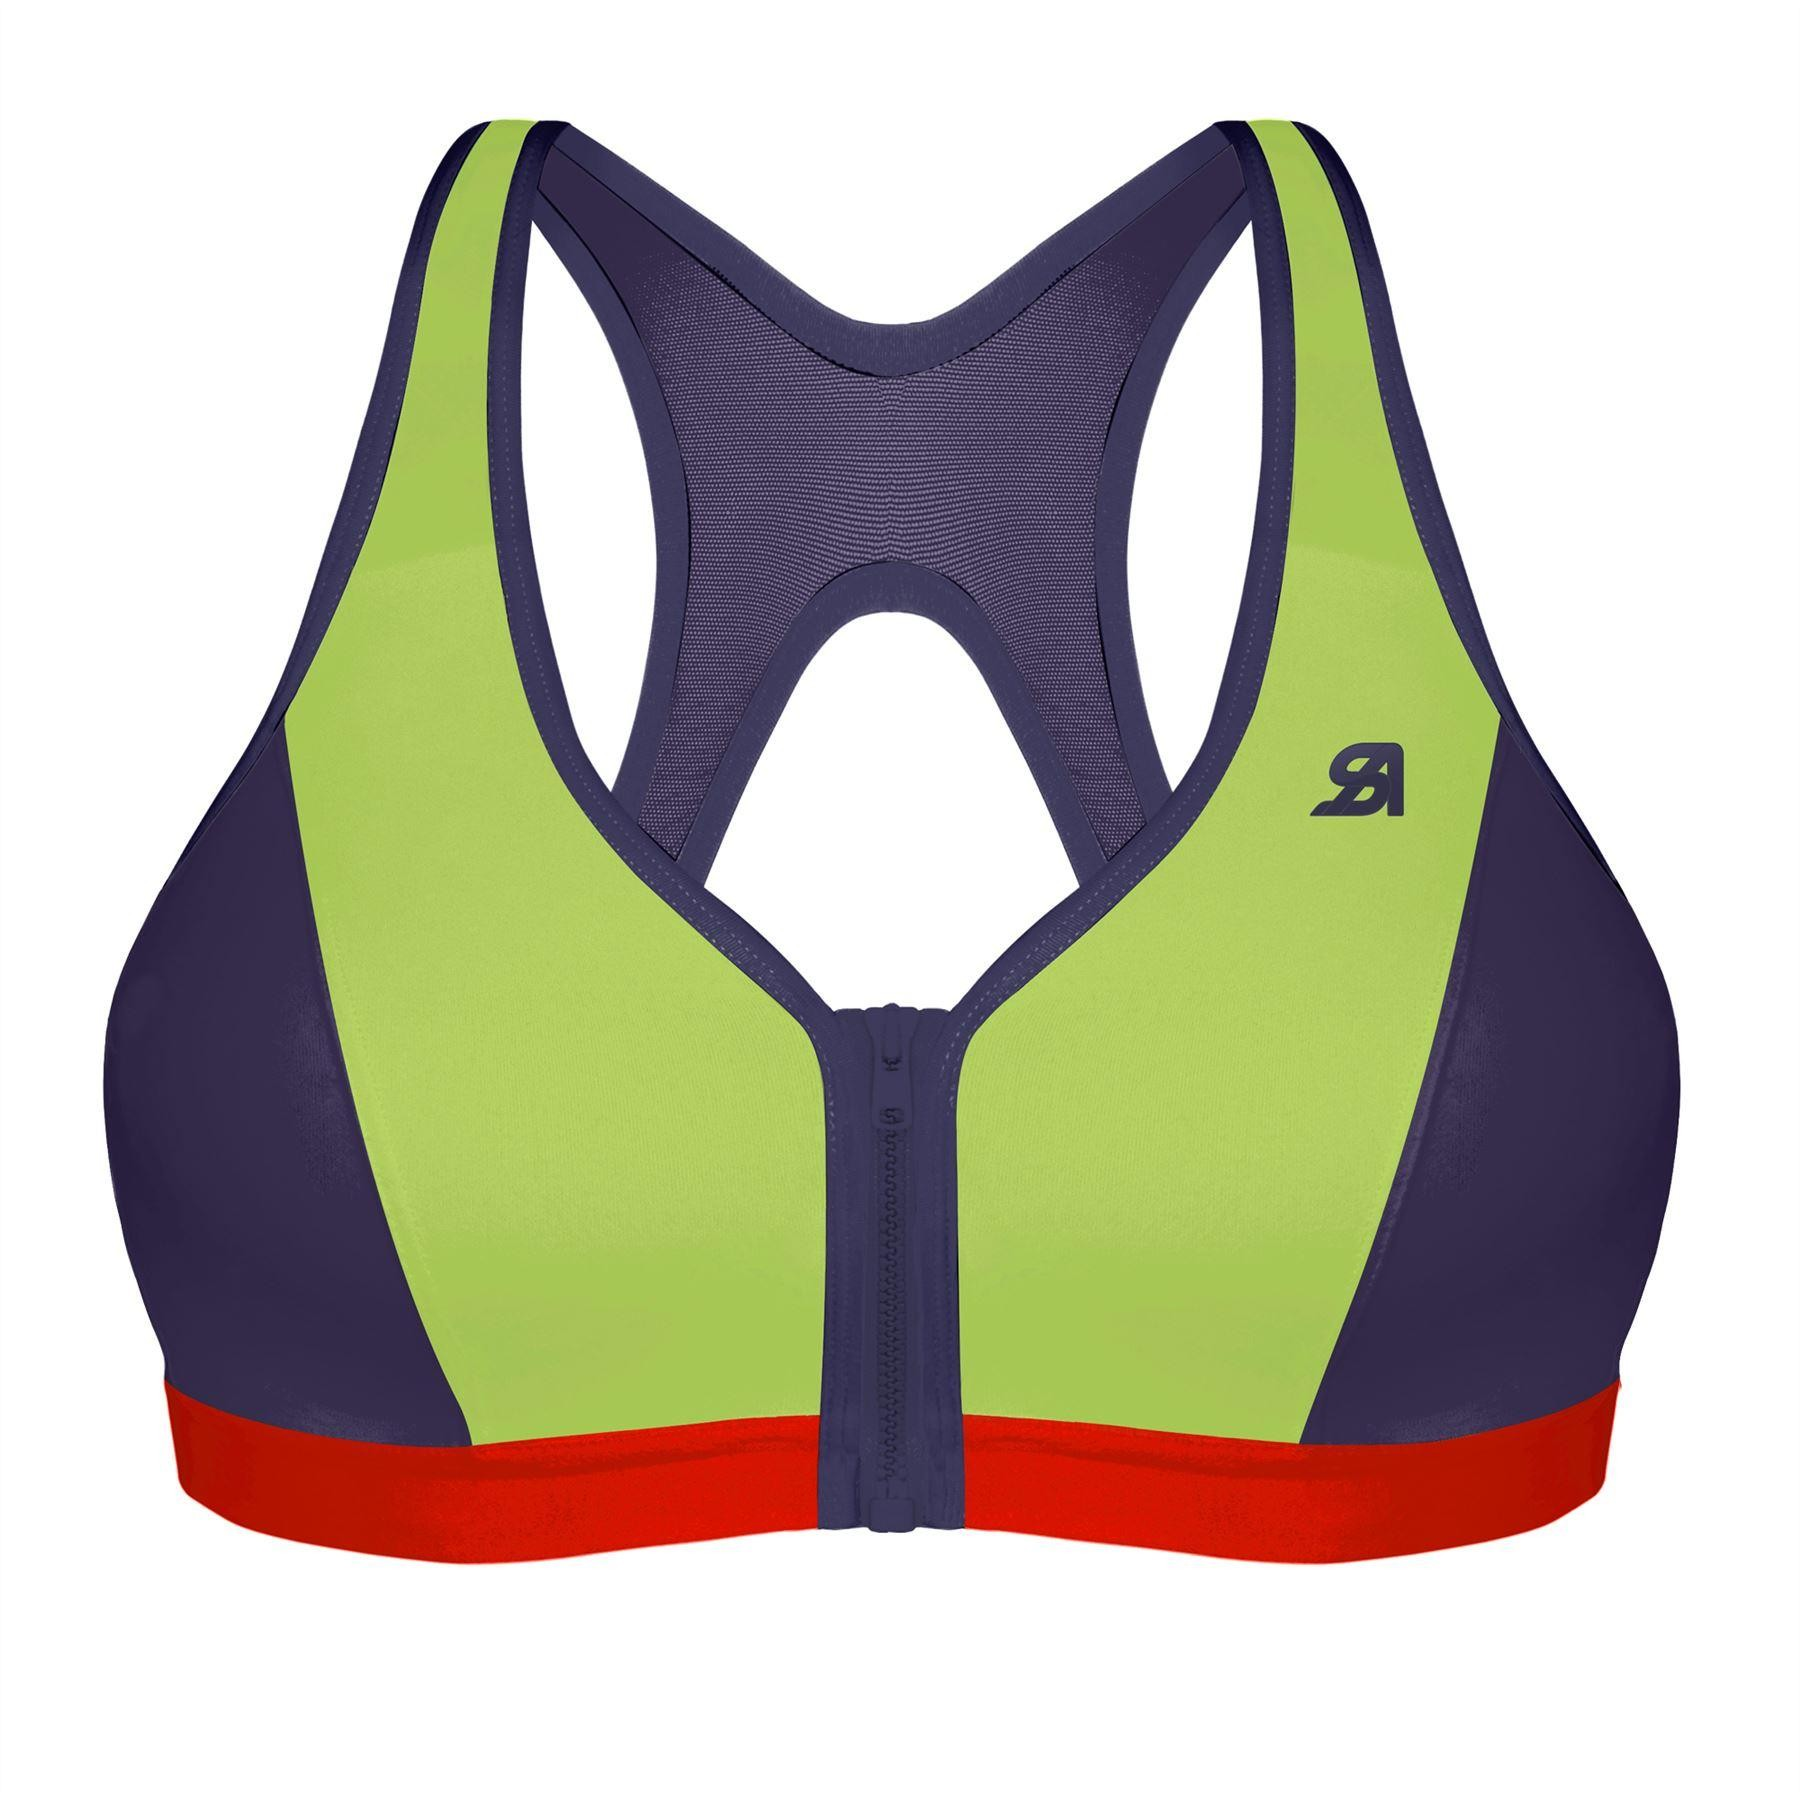 23fcea98c5c Shock Absorber Active Zipped Plunge Sports Bra - Multi